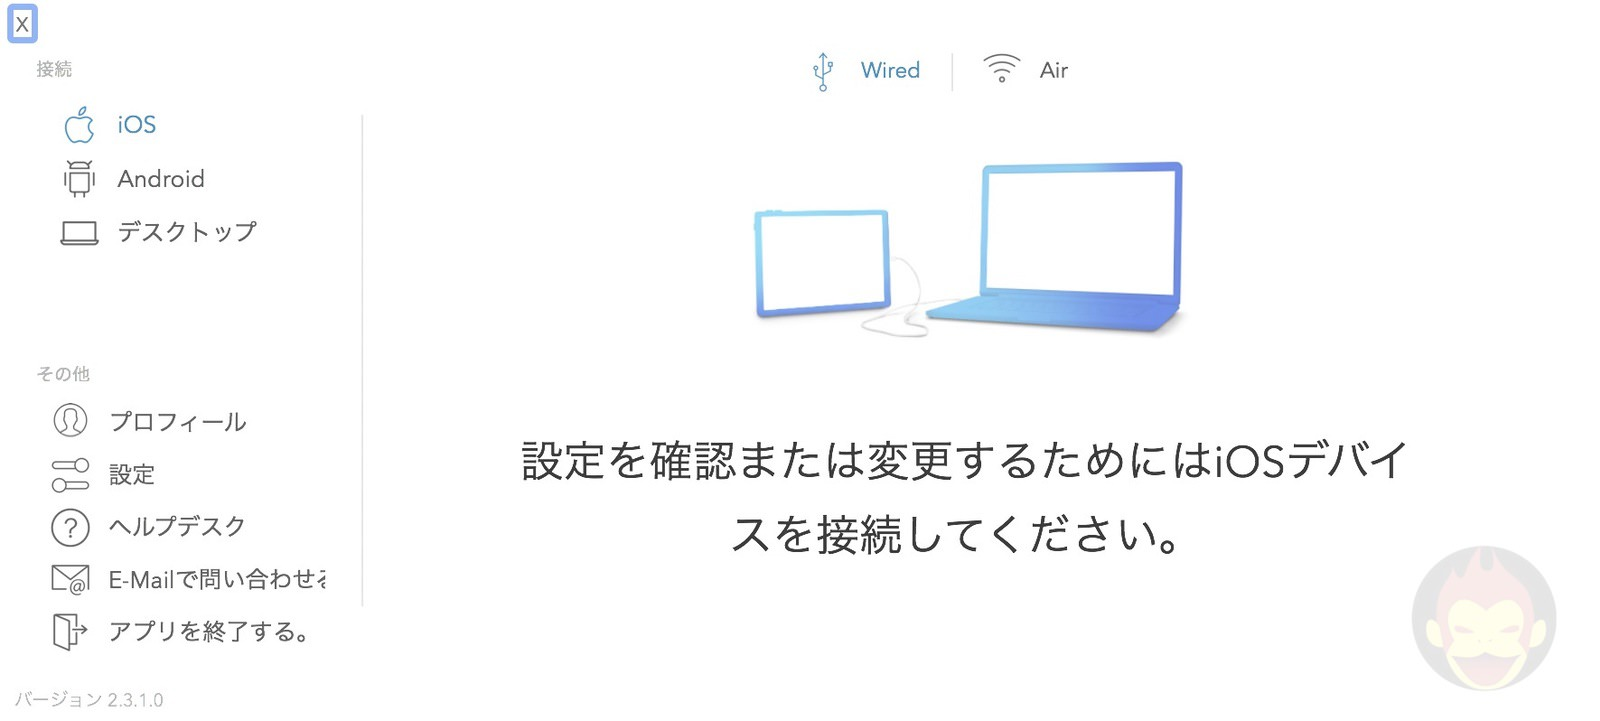 Duet-Luna-iPad-Display-for-mac-08.jpg